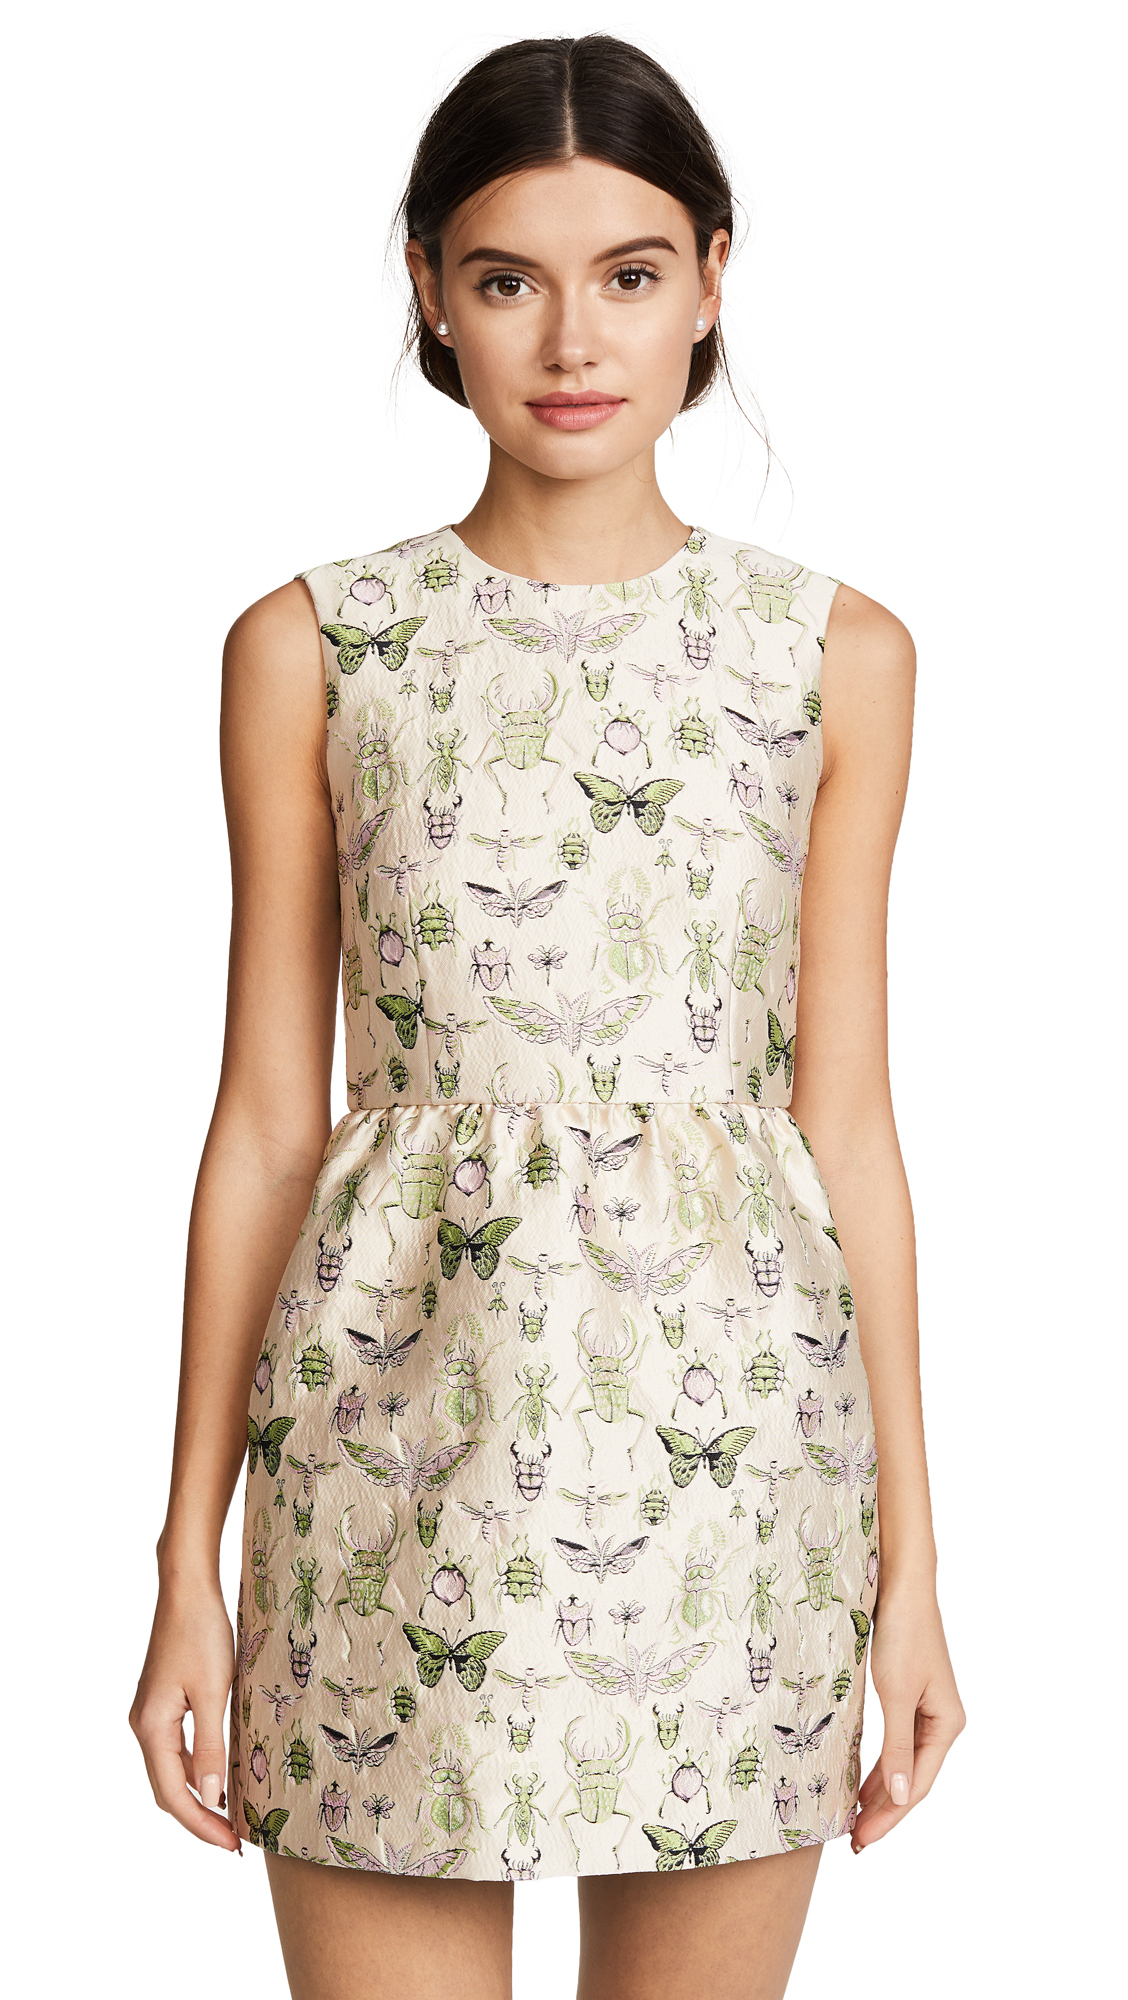 RED Valentino Brocade Dress - Insect Brocade Bambolina